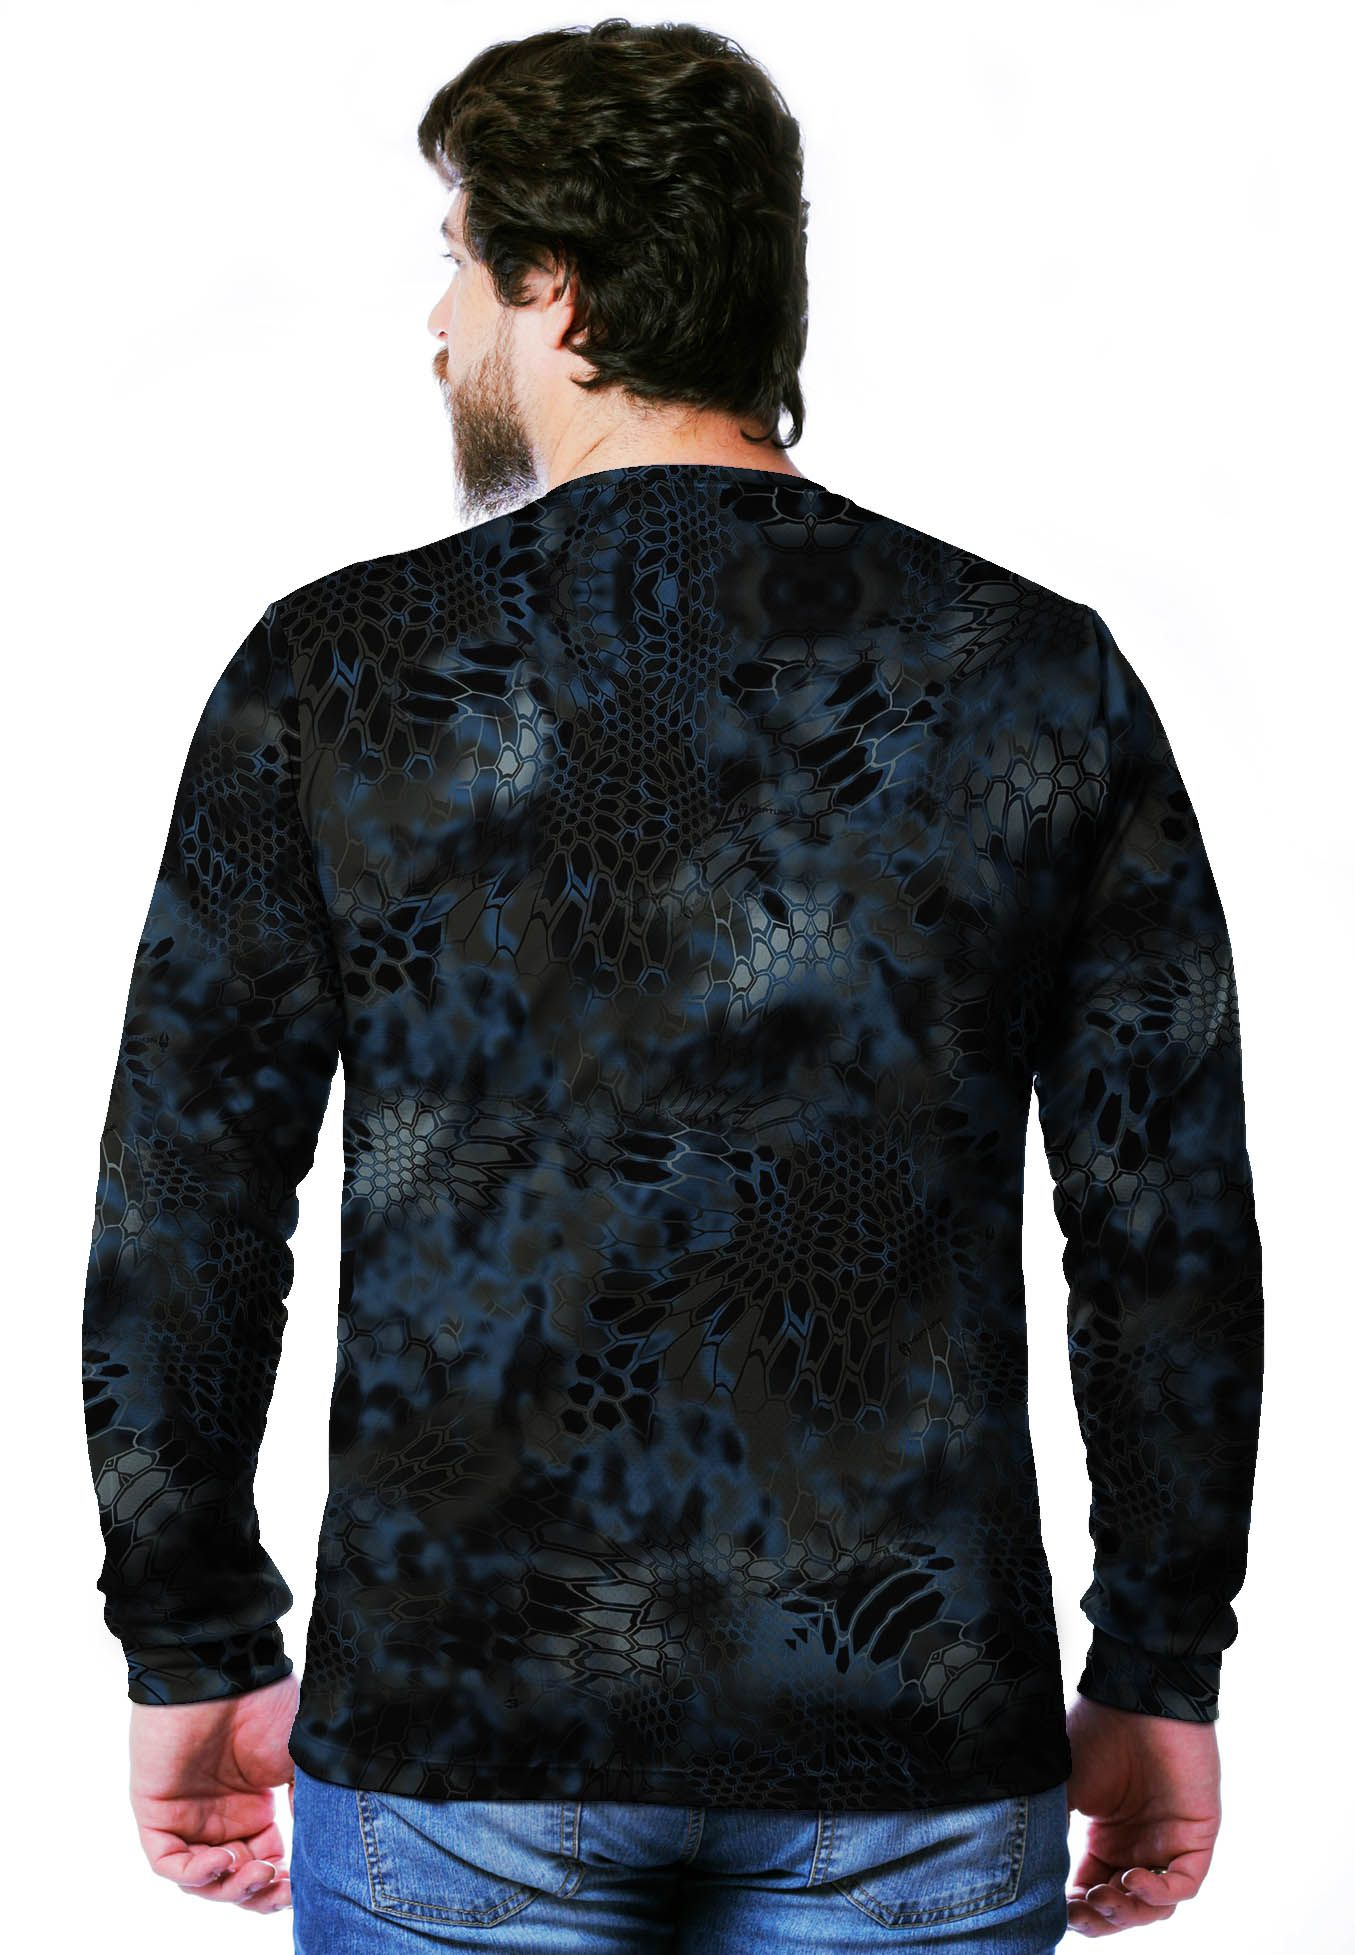 CAMISETA CAMUFLADA NEPTUNE MANGA LONGA MASCULINA  - REAL HUNTER OUTDOORS